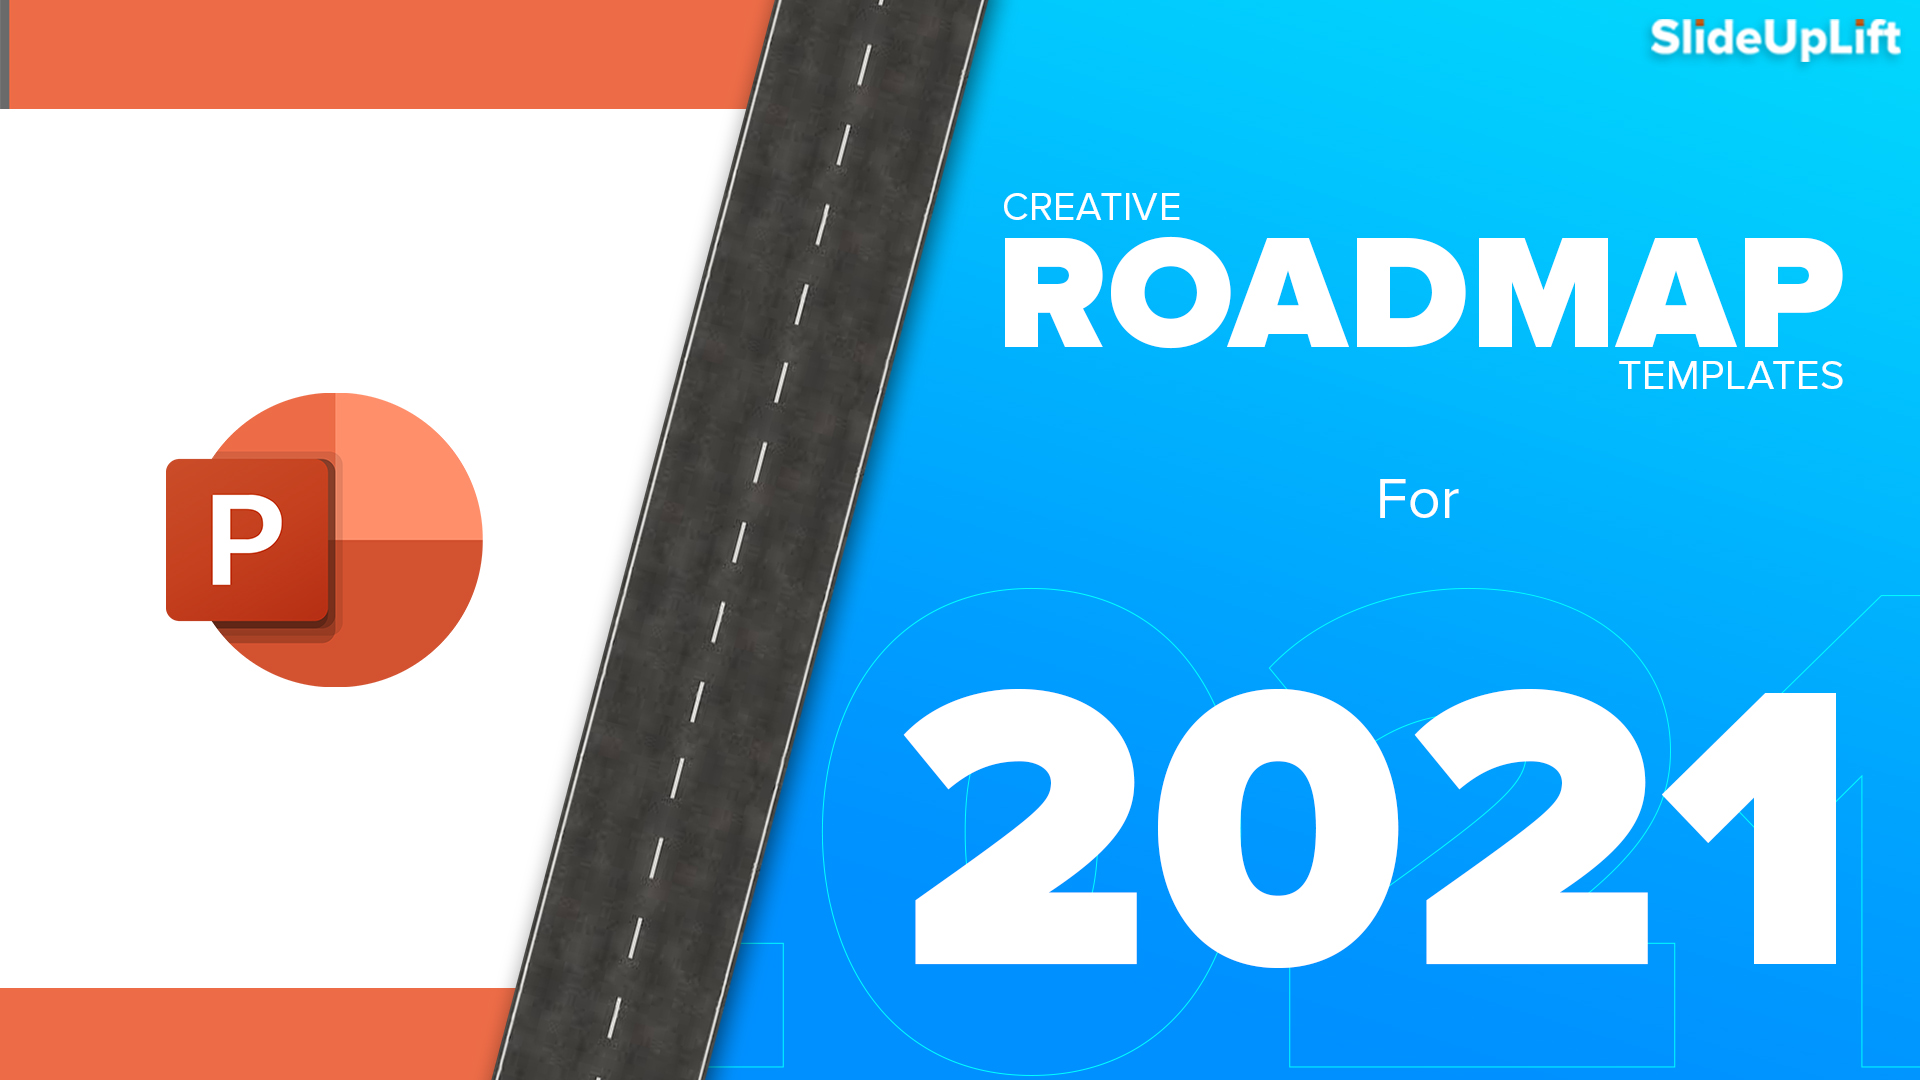 Creative Roadmap PowerPoint Templates for 2021 Business Planning Plus Free Roadmap Template